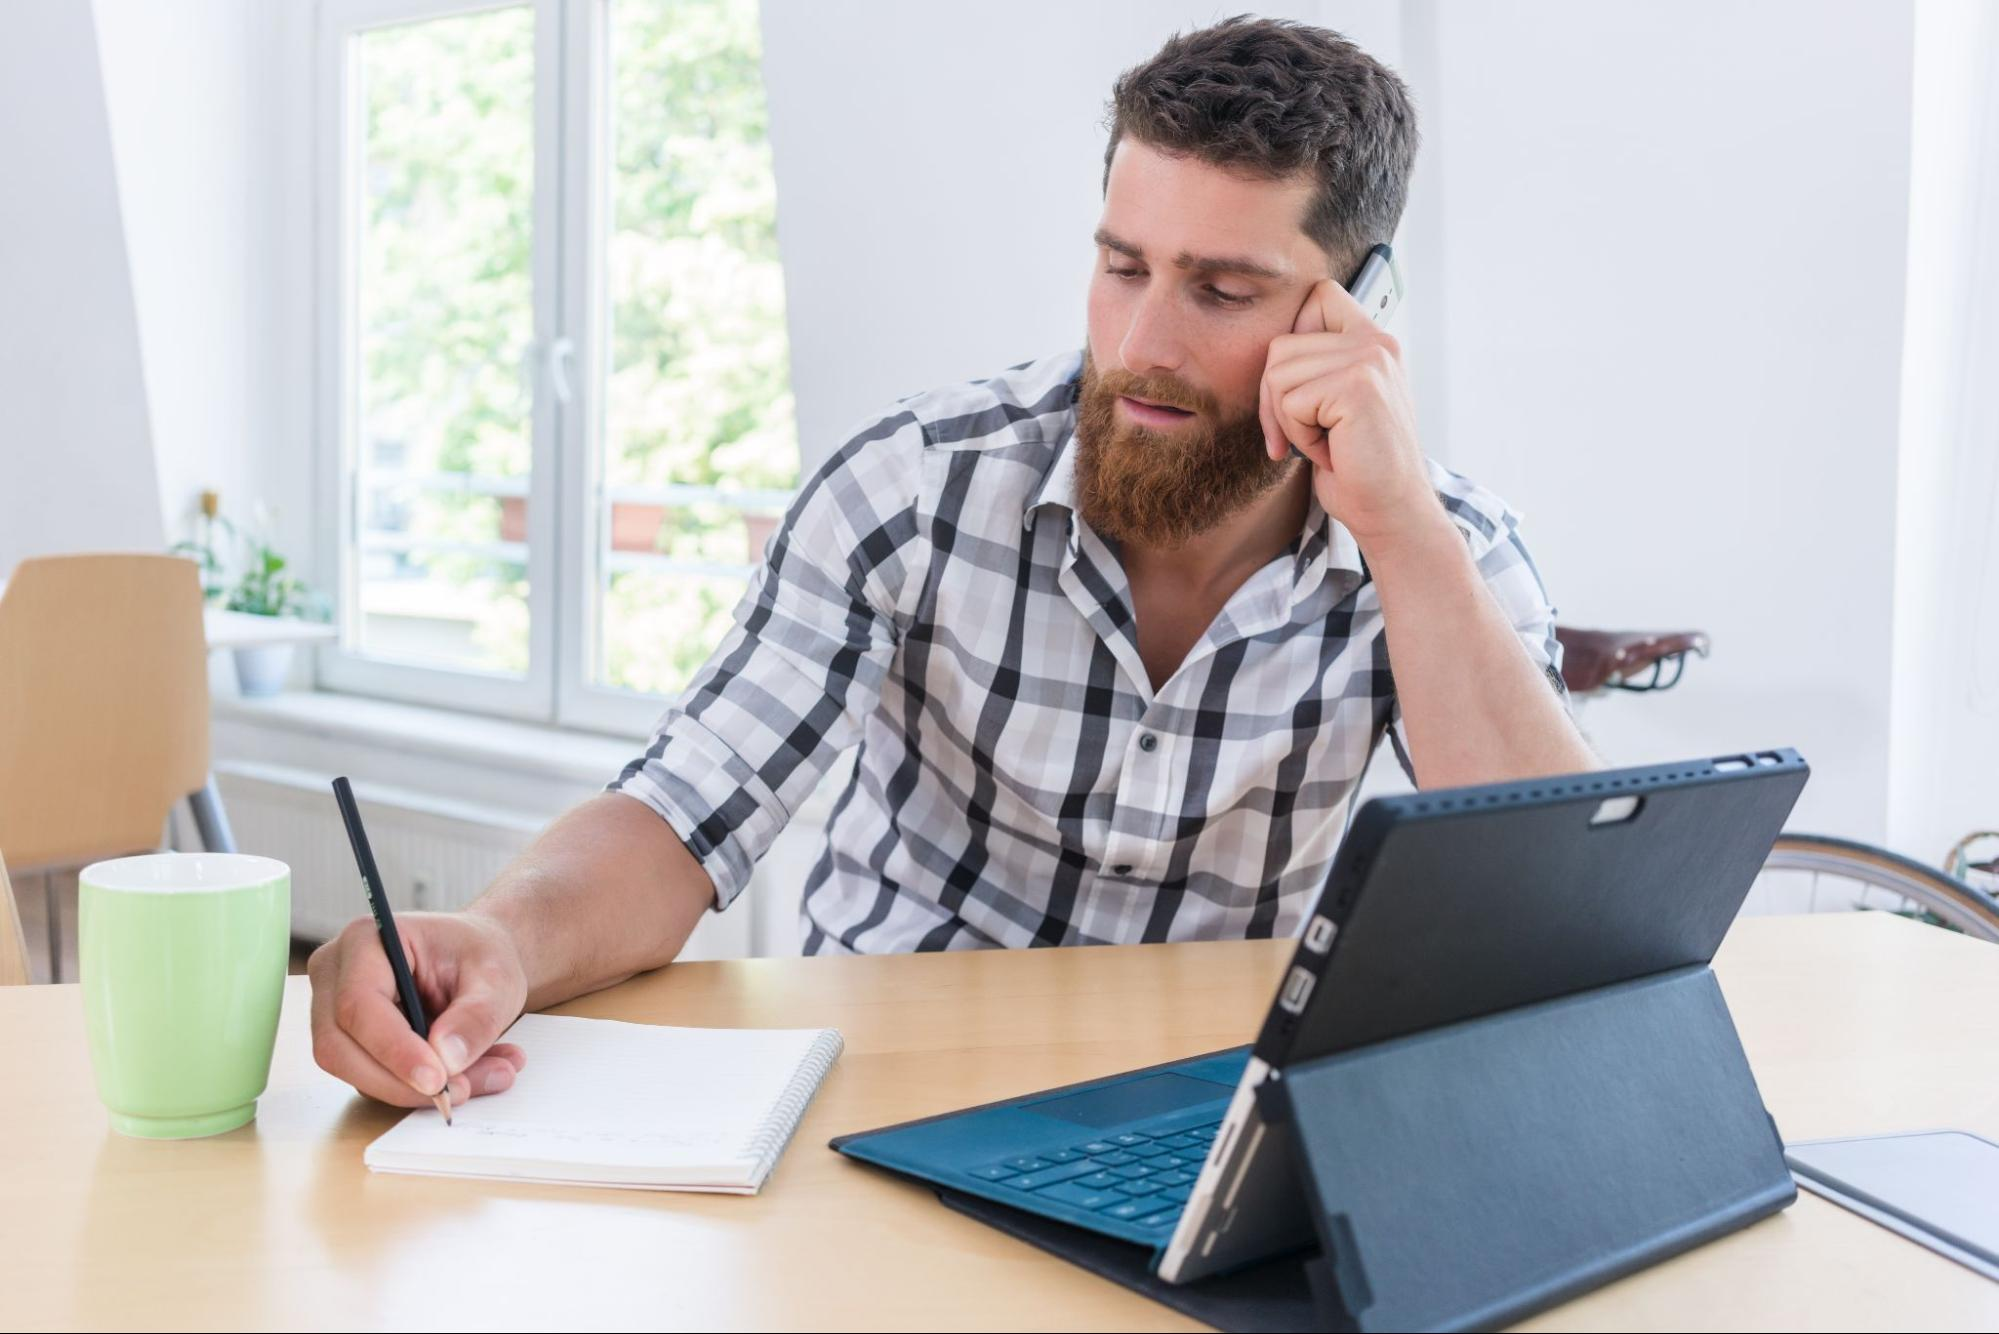 An independent contractor taking notes at home while on a phone call